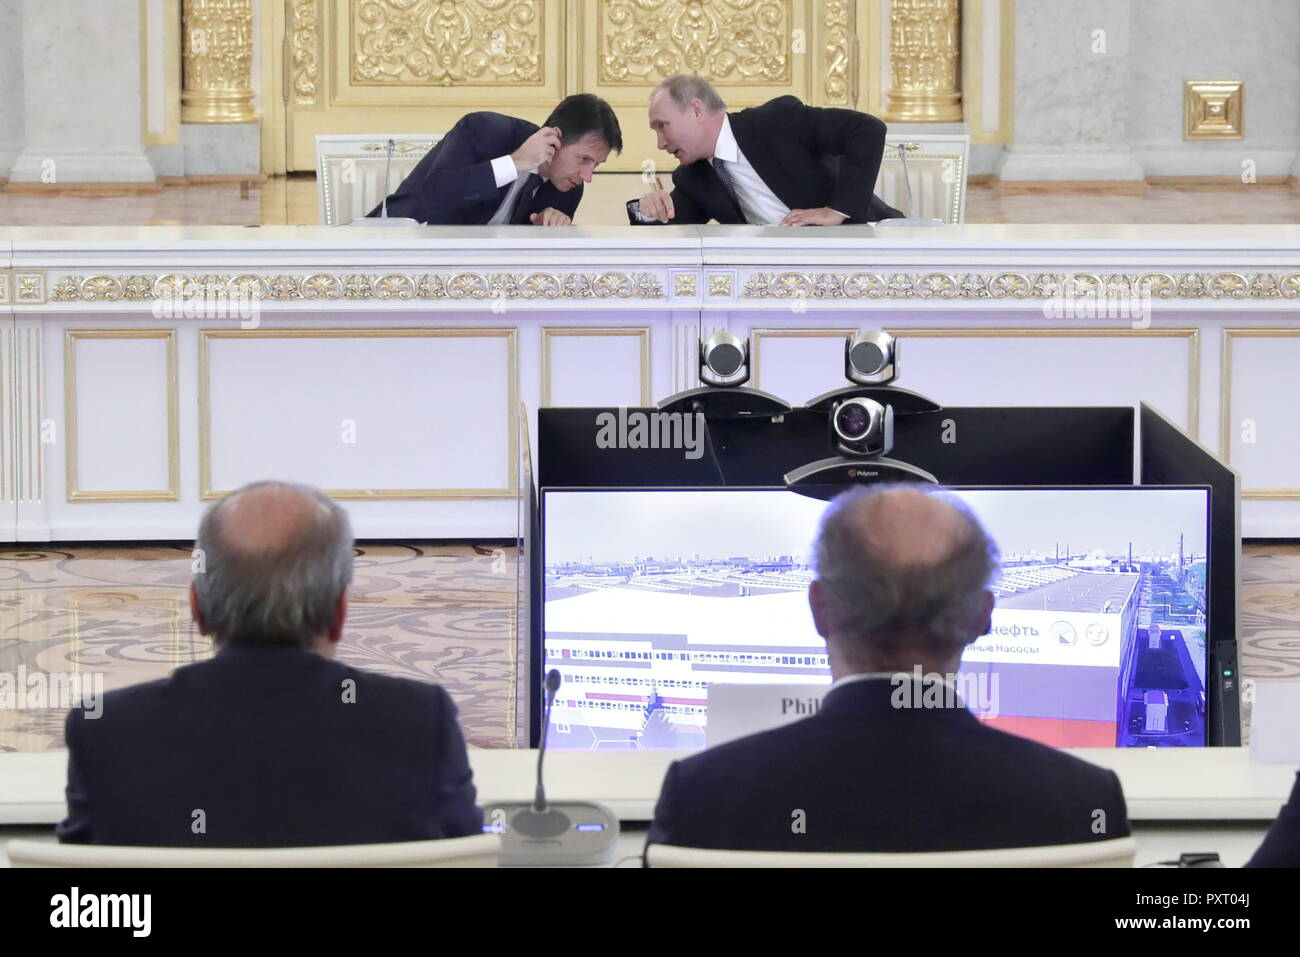 Moscow, Russia. 24th Oct, 2018. MOSCOW, RUSSIA - OCTOBER 24, 2018: The Prime Minister of Italy Giuseppe Conte (L back), and the President of Russia Vladimir Putin (R back) at a meeting of senior Russian and Italian government officials and members of Russia's and Italy's business community in the Alexander Hall of the Kremlin; those attending the meeting took part in the inauguration ceremony of a plant of the Russian Electric Motors (REM) company via a videoconference link between Moscow and Chelyabinsk. Mikhail Metzel/TASS Credit: ITAR-TASS News Agency/Alamy Live News - Stock Image